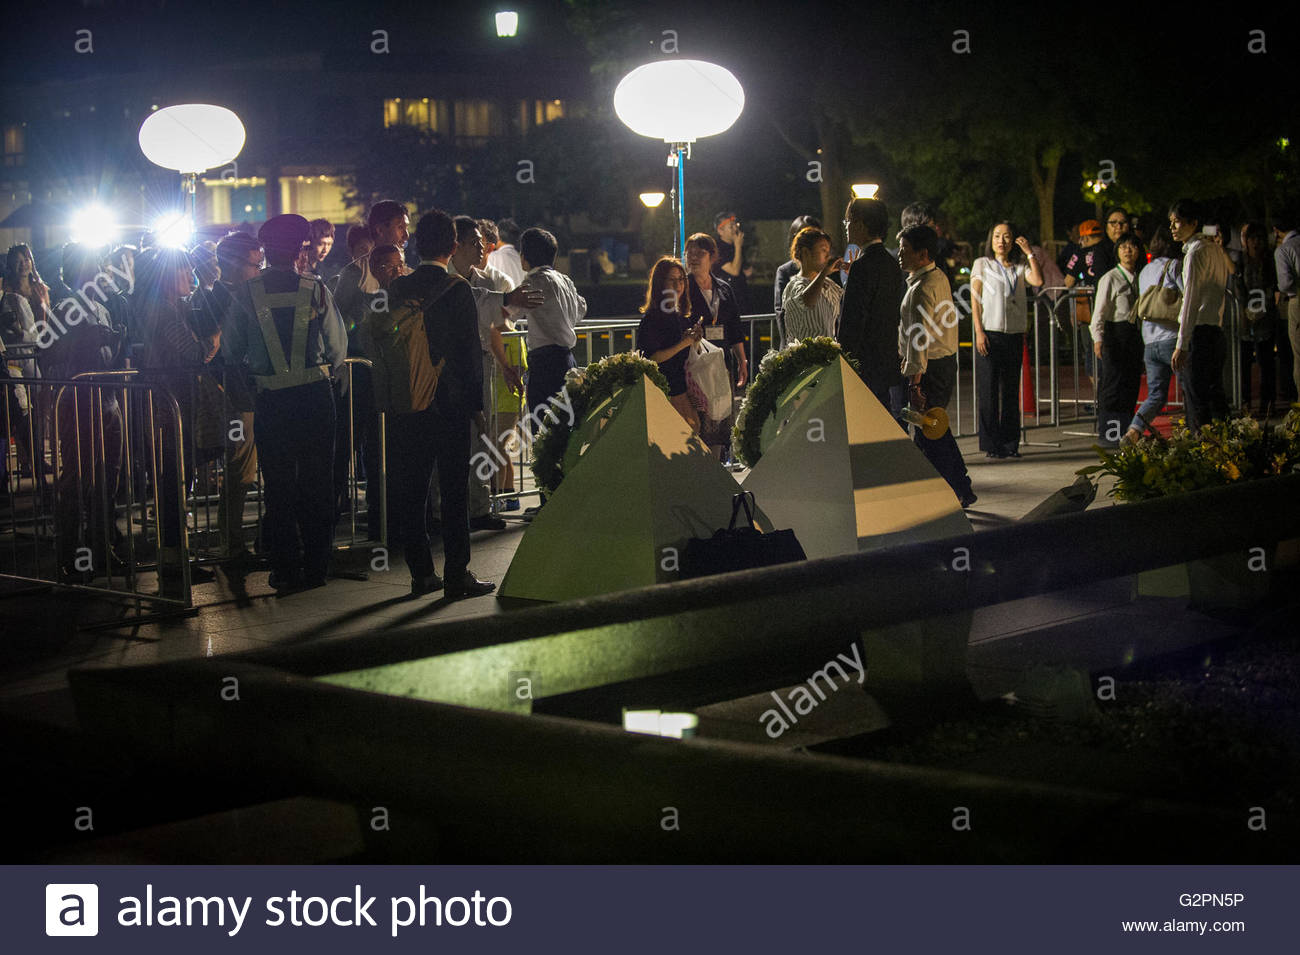 Hiroshima citizens take photographs of the wreath laid by US President Barack Obama at Hiroshima Peace Park during - Stock Image